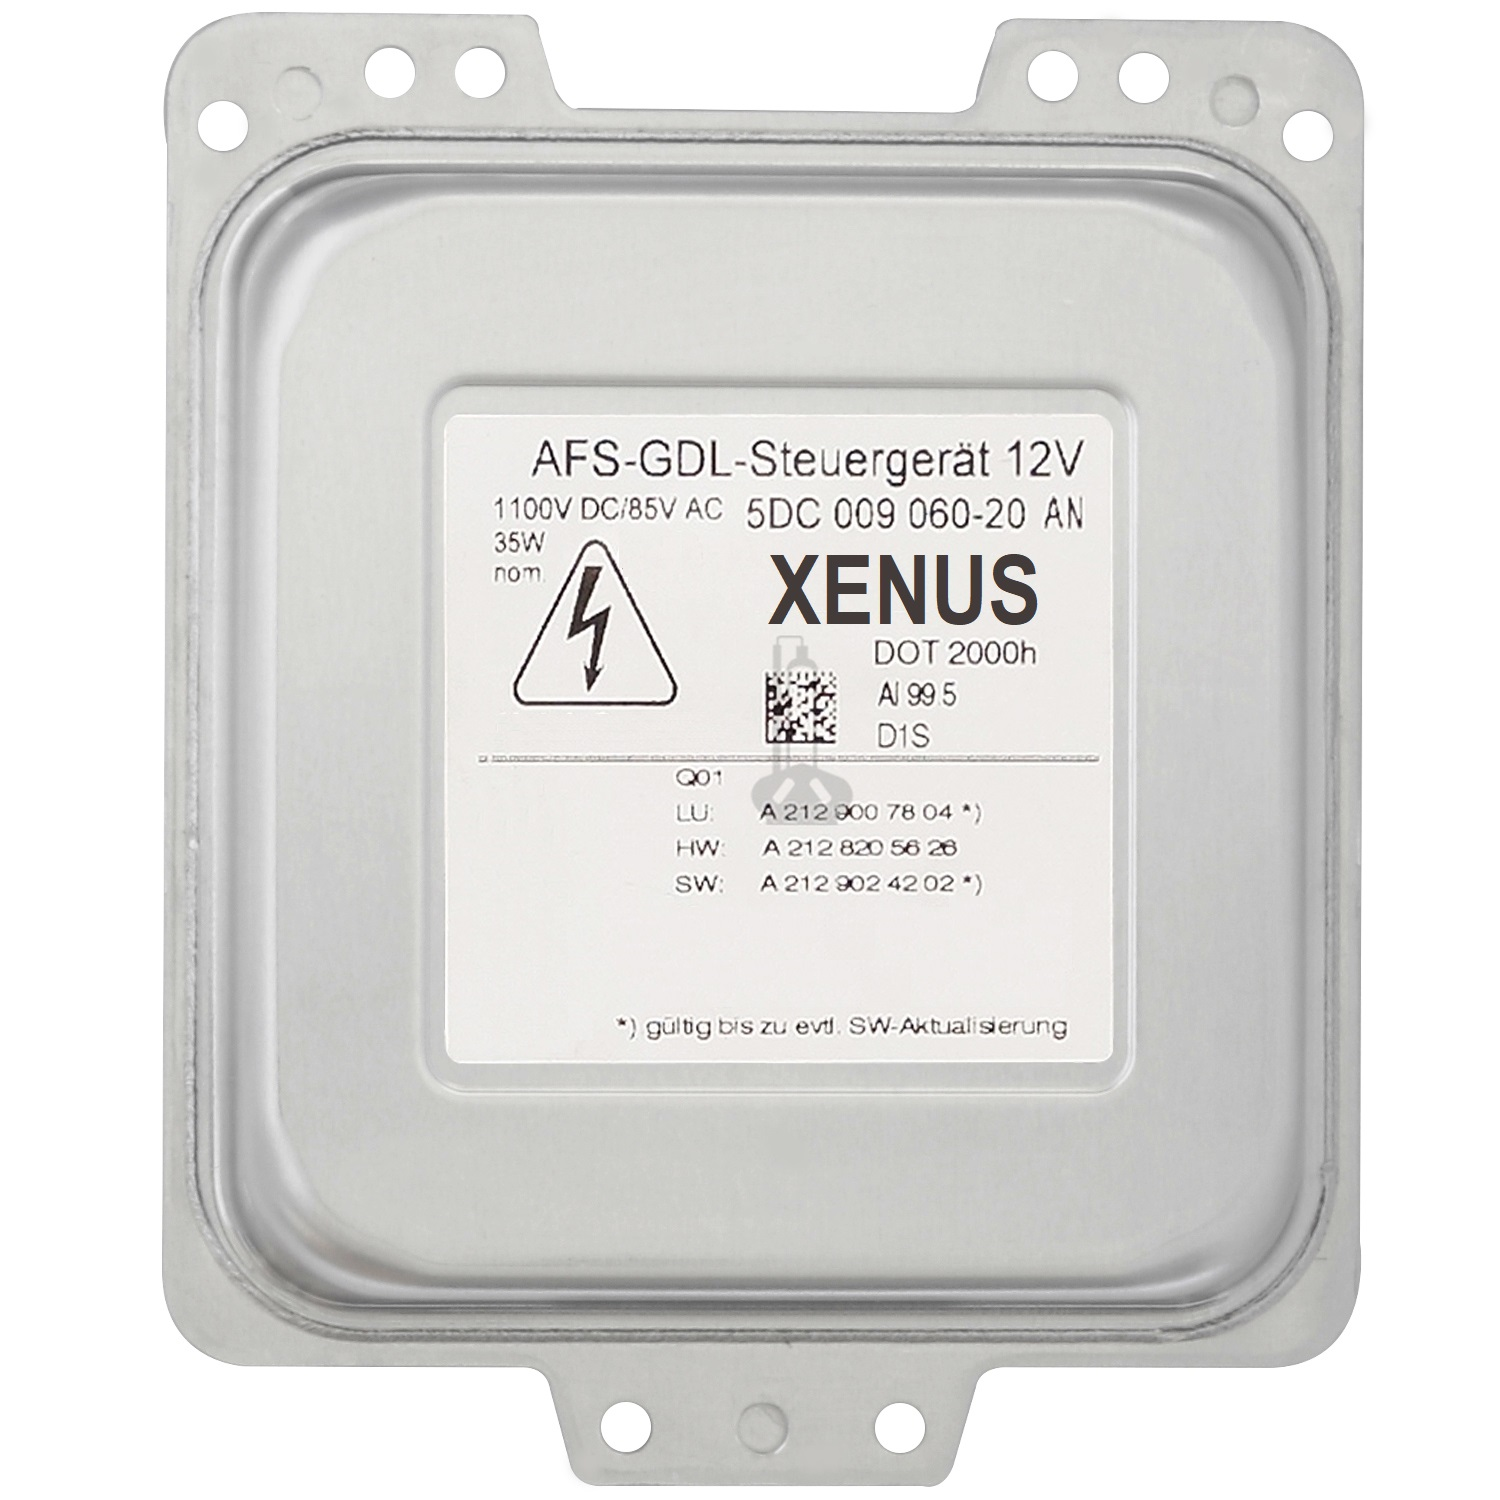 XENUS 5DC 009 060-20 AN AFS-GDL Headlight Ballast Control Unit 12V, Replacement for Hella